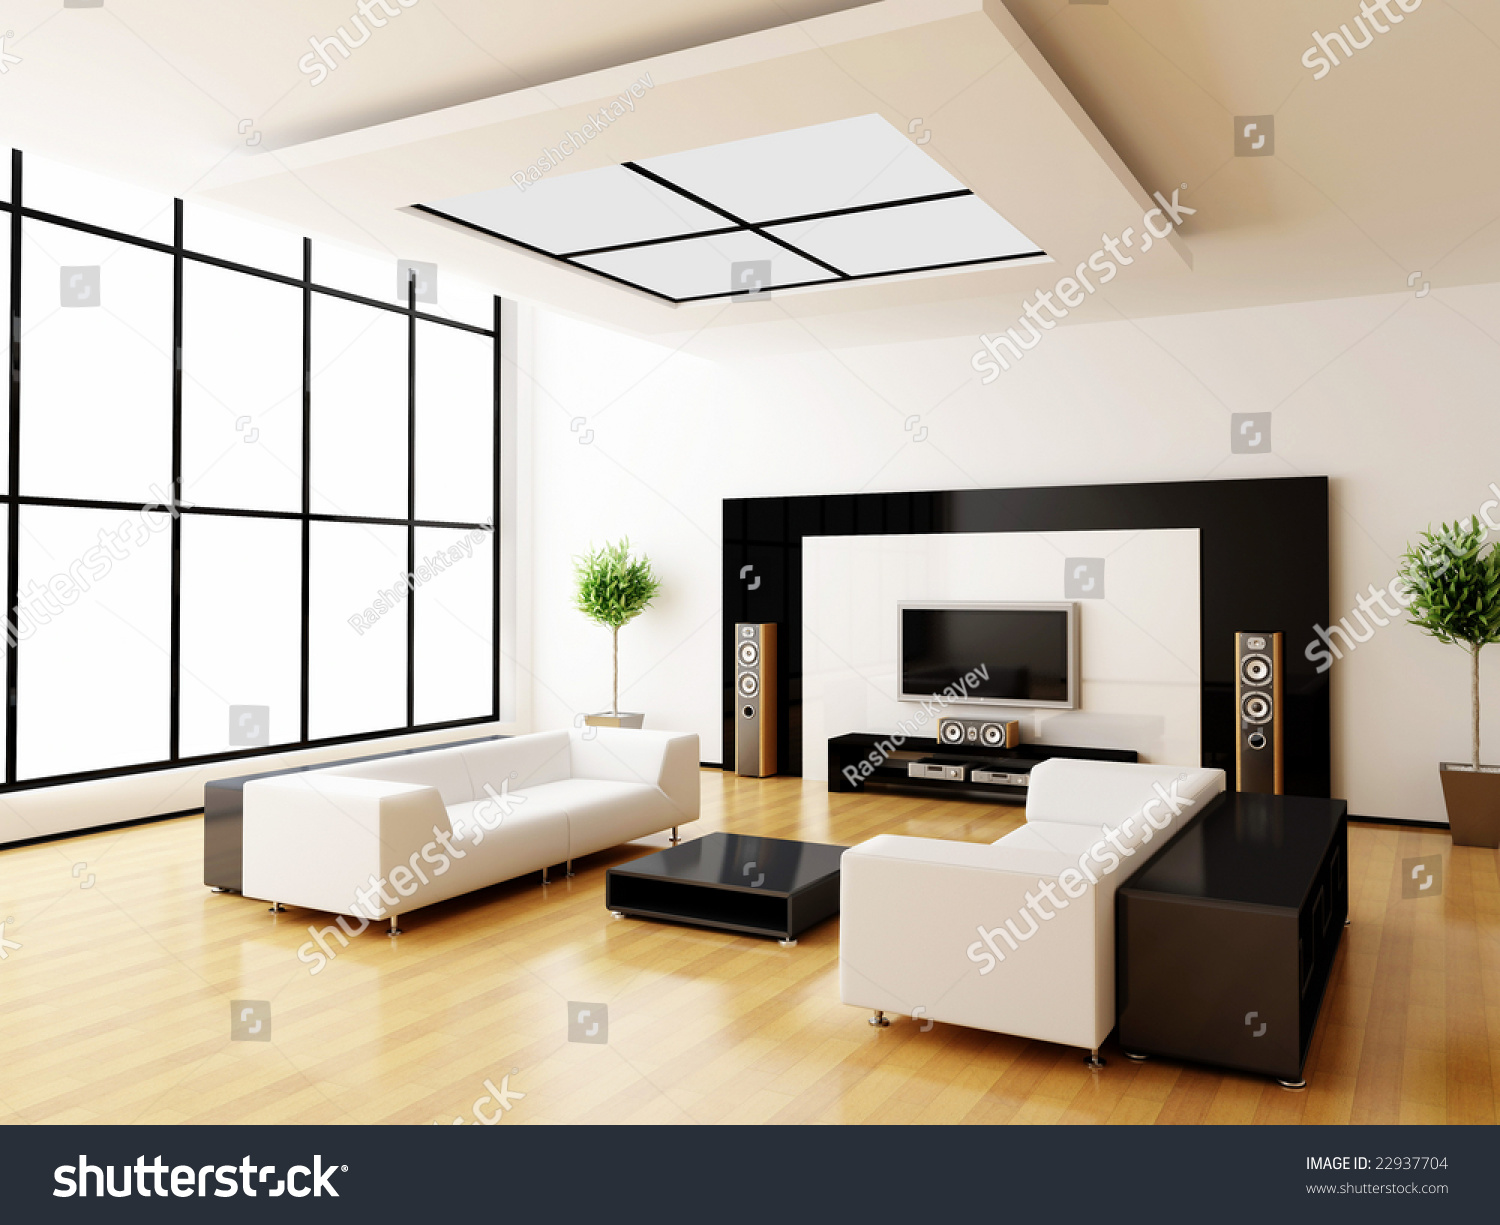 Royalty Free Stock Illustration Of Modern Home Interior 3 D